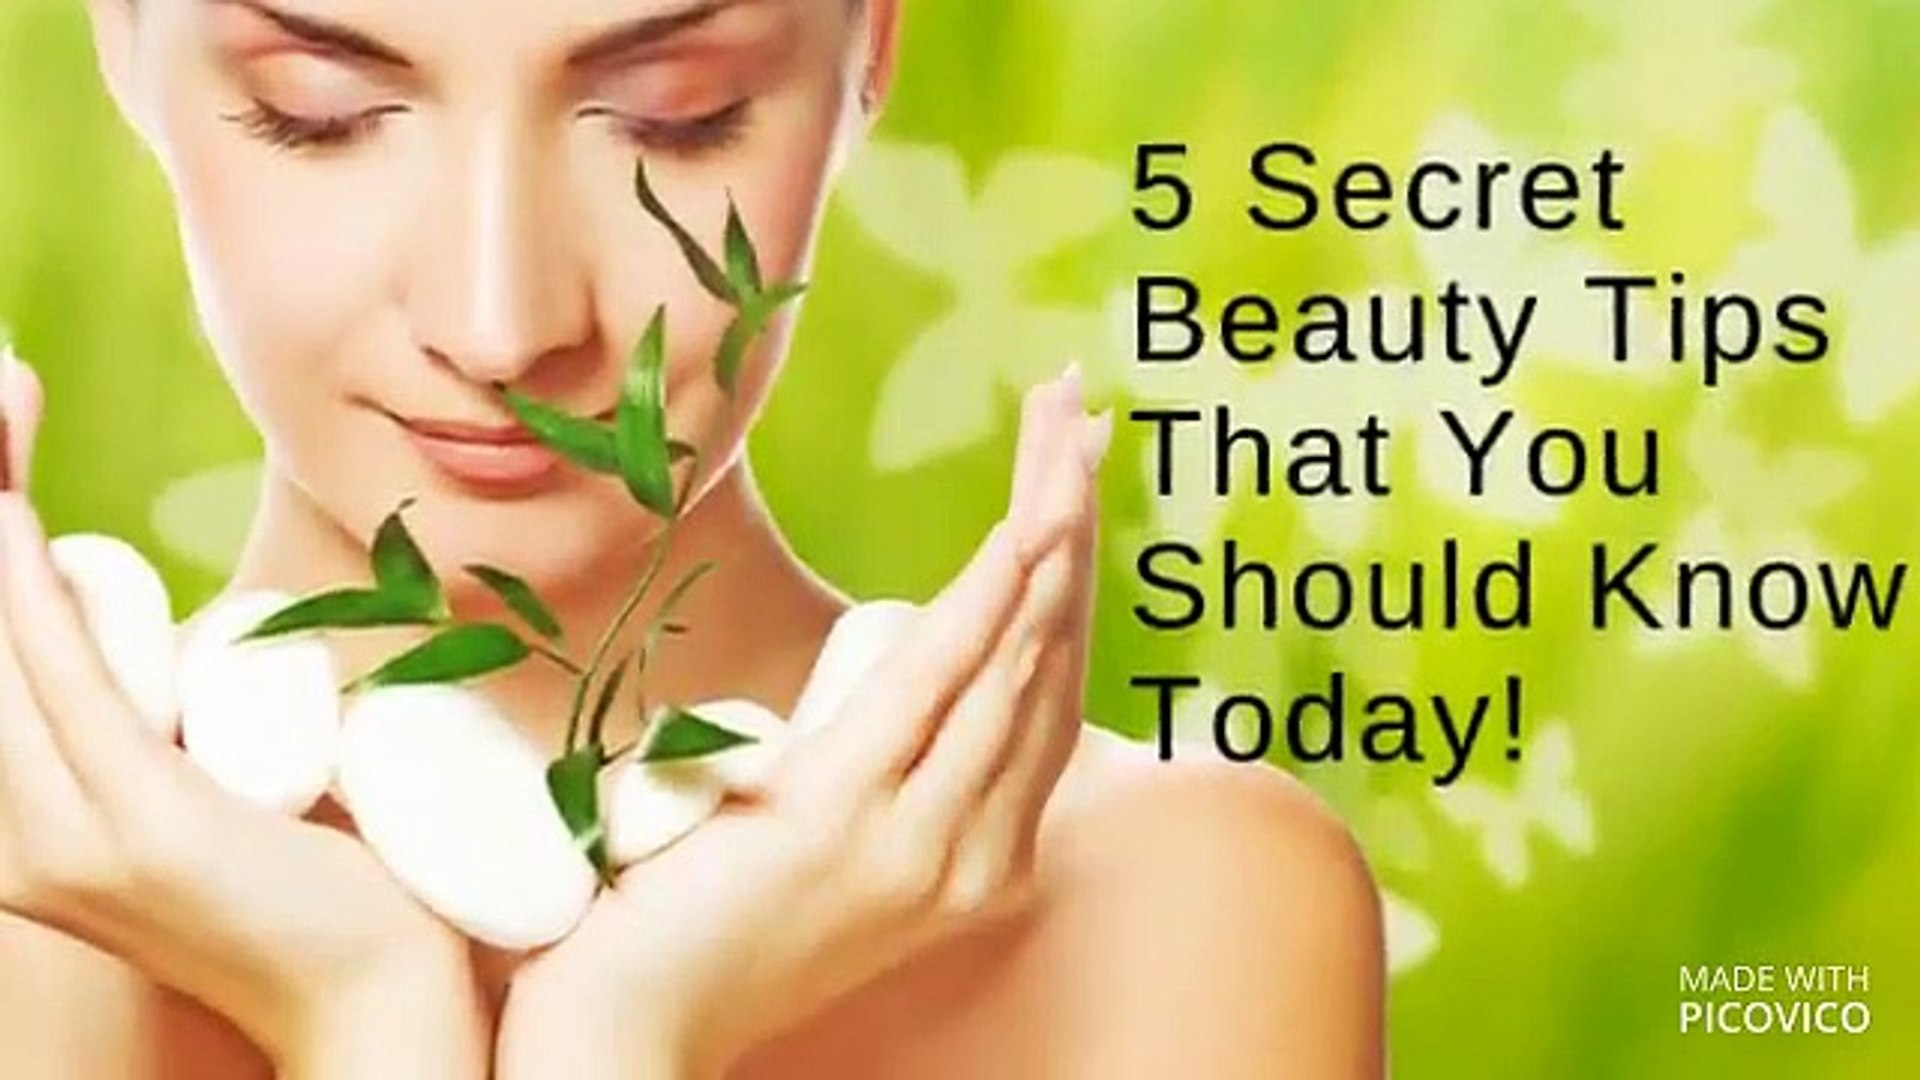 10 Secret Beauty Tips That You Should Know Today! - video Dailymotion